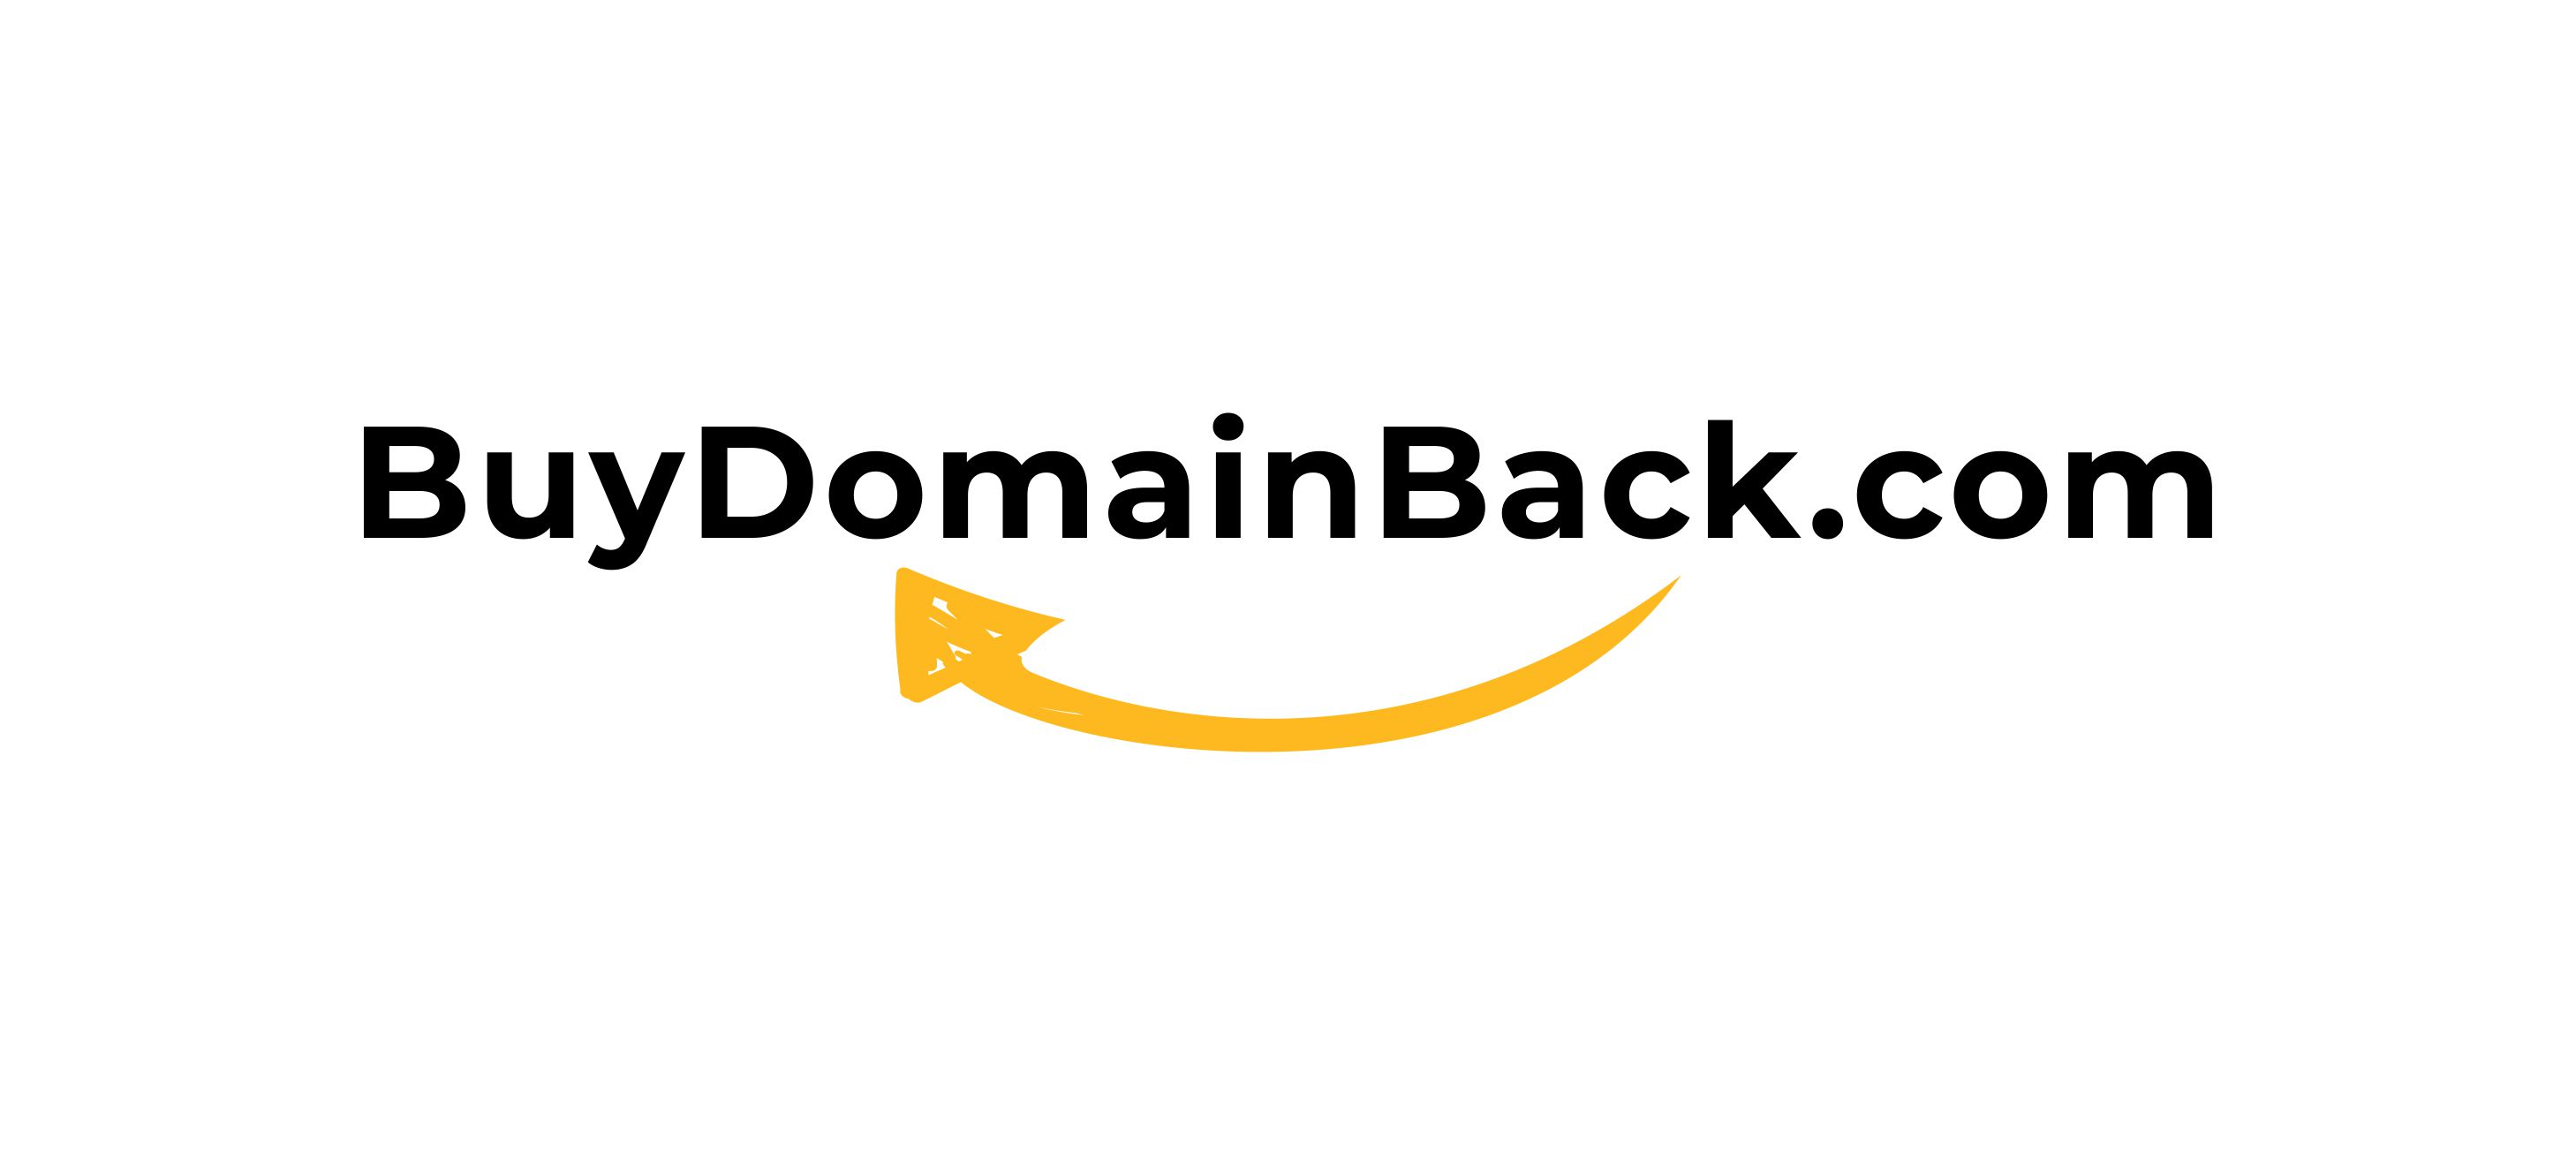 Help! I've Lost My Domain Name!